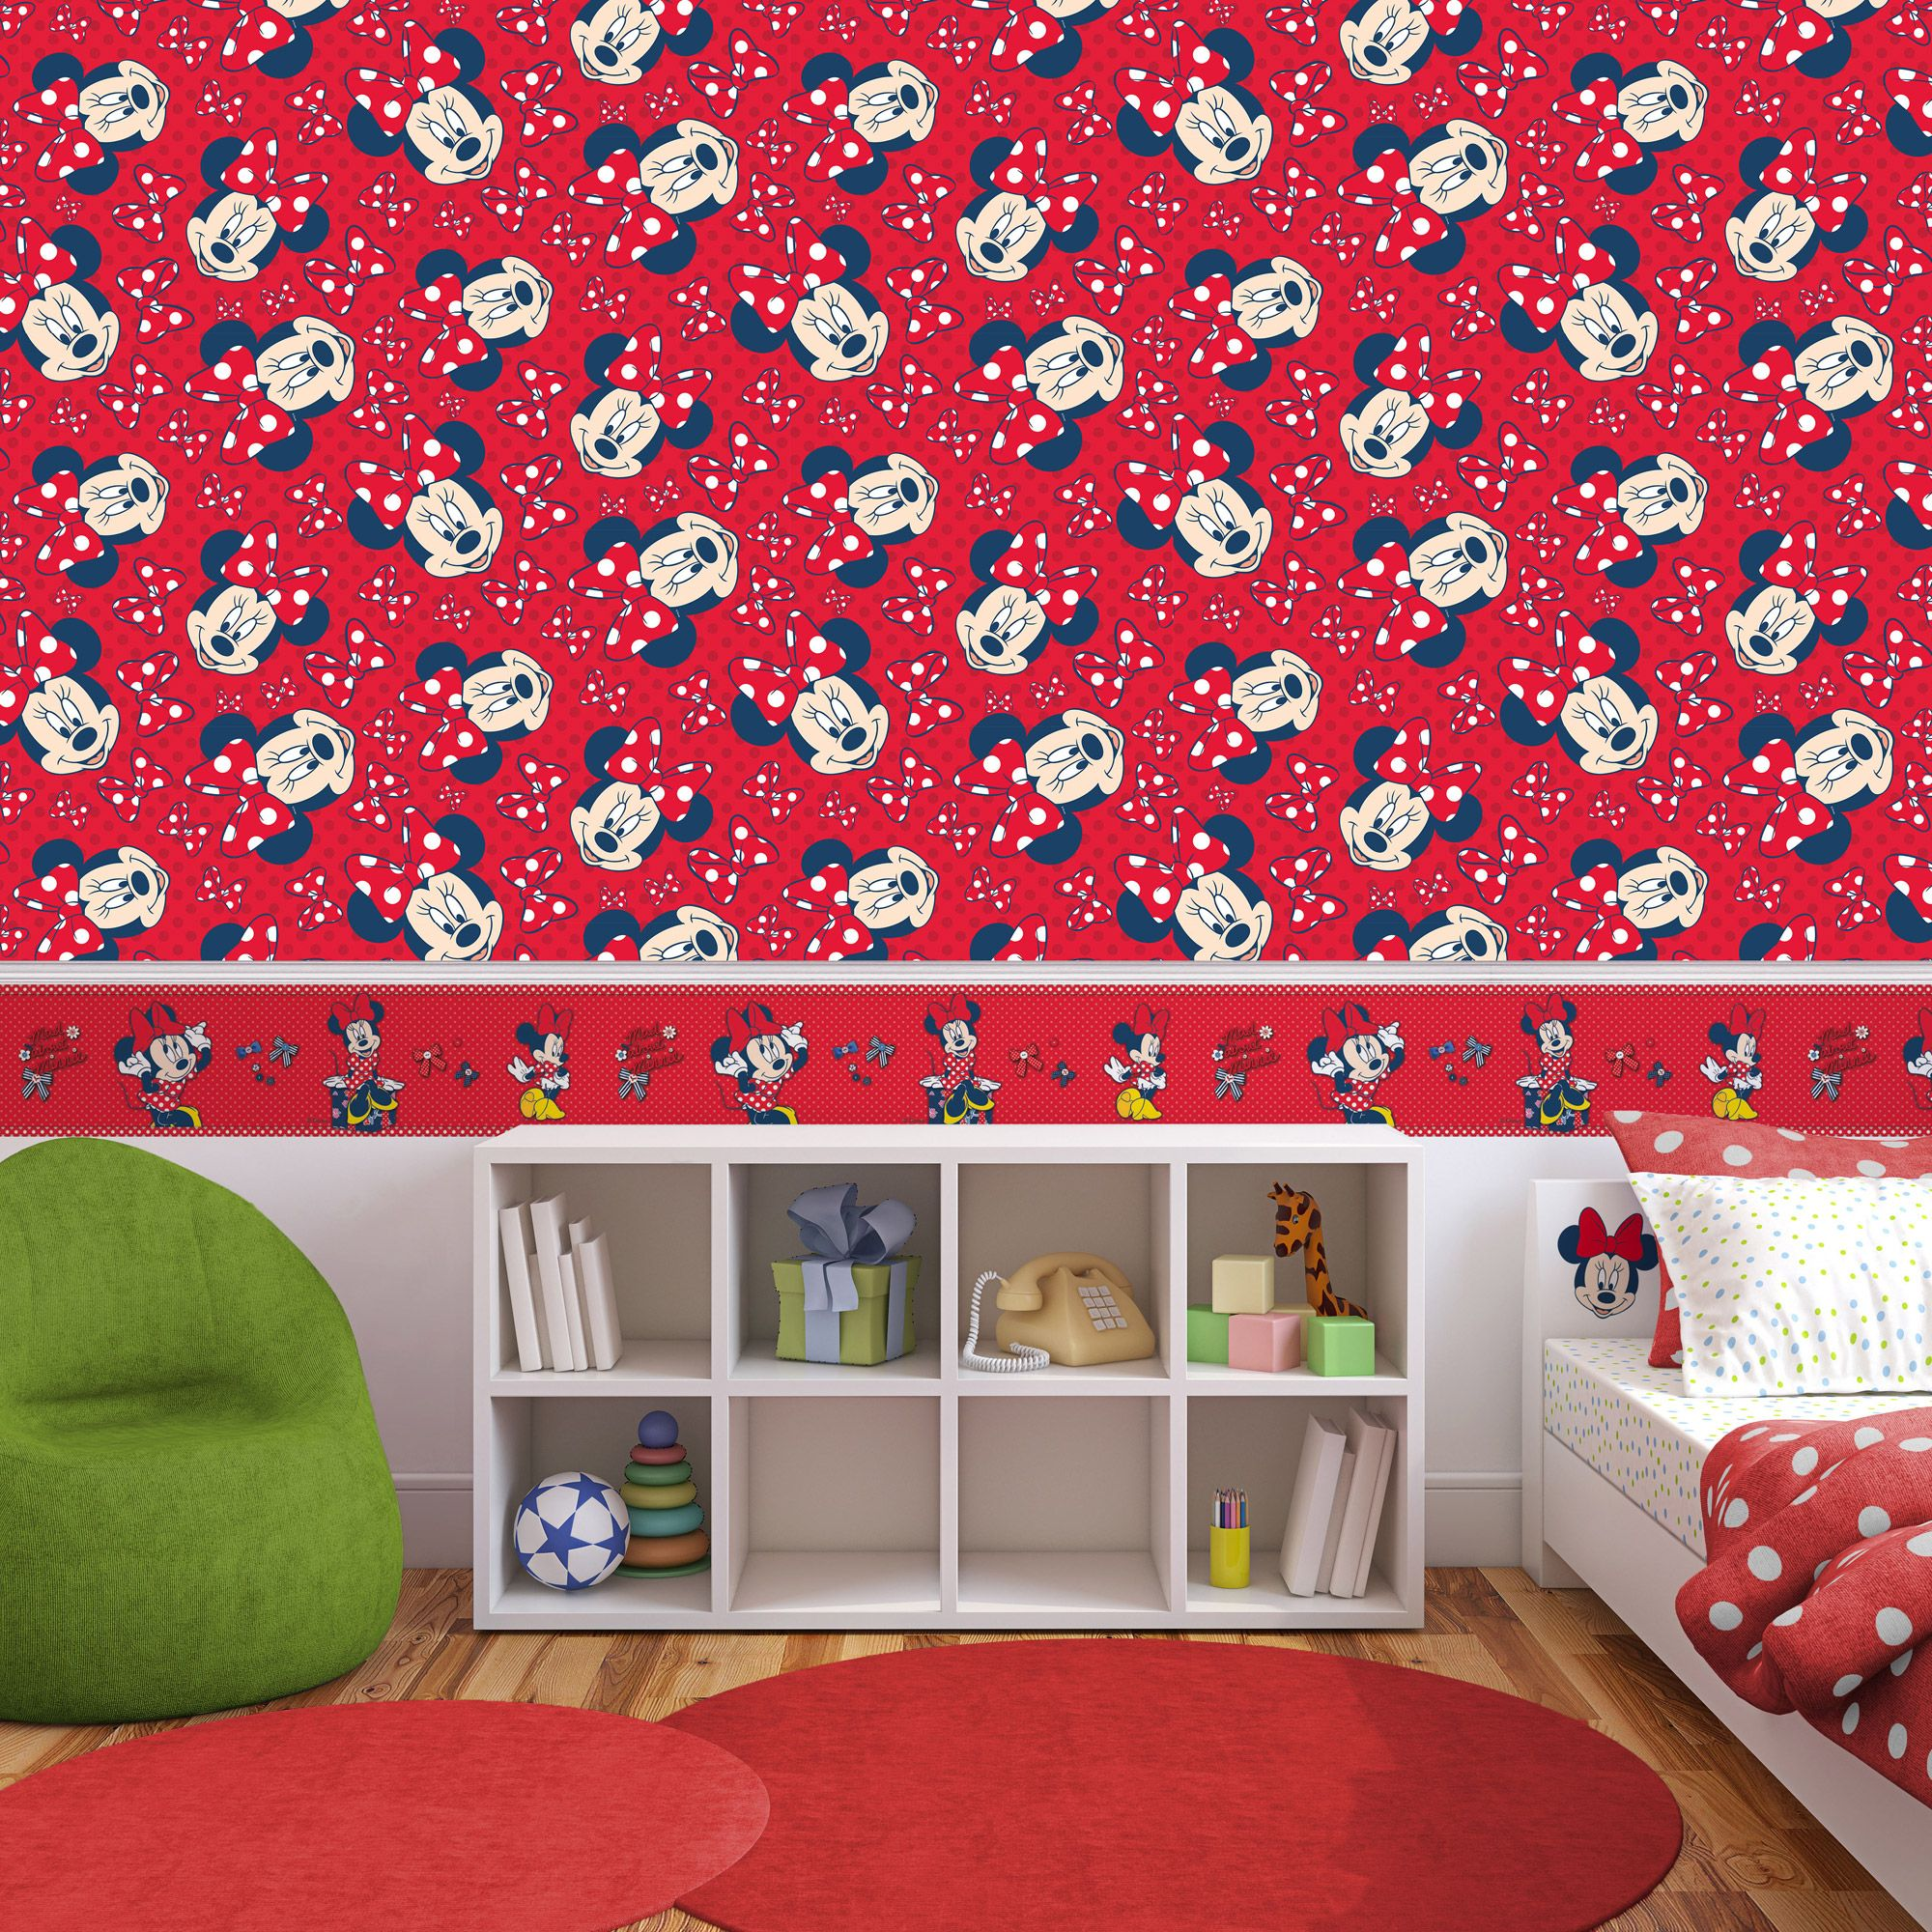 Minnie Mouse Wallpaper For Bedroom Mouse Wallpaper Bedroom Mouse Wallpaper Bedroom Nature Cartoon